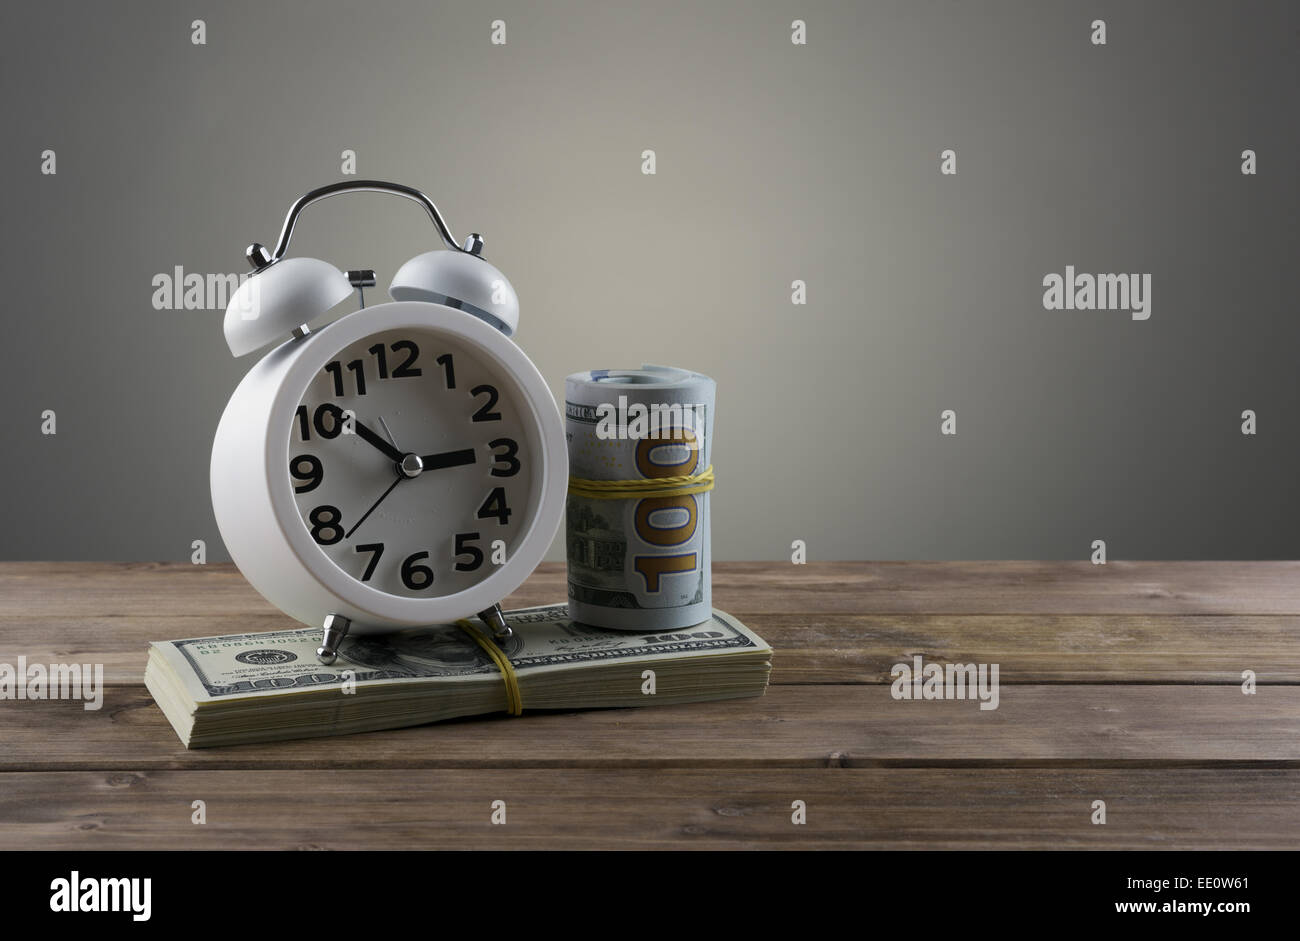 Time is money concept with clock and dollars - Stock Image